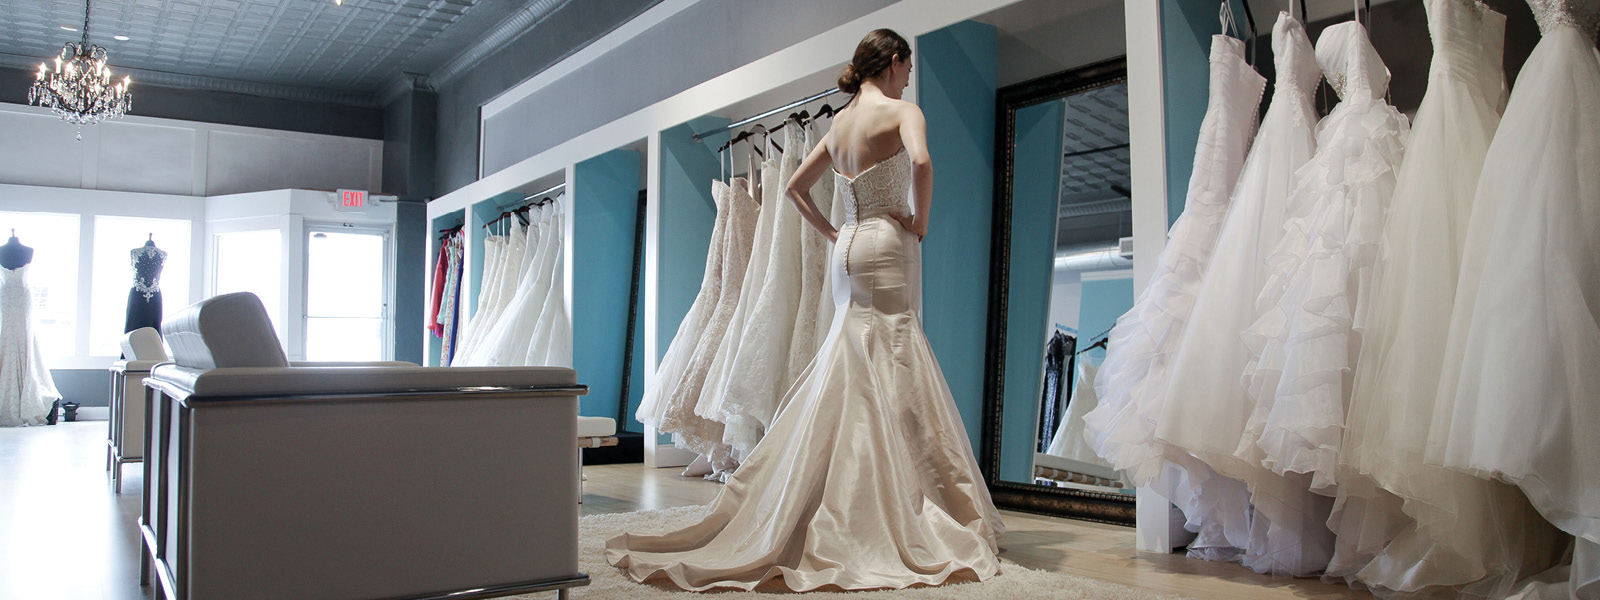 Bridal boutique san angelo wedding dress bridal shop for Wedding dress boutiques chicago